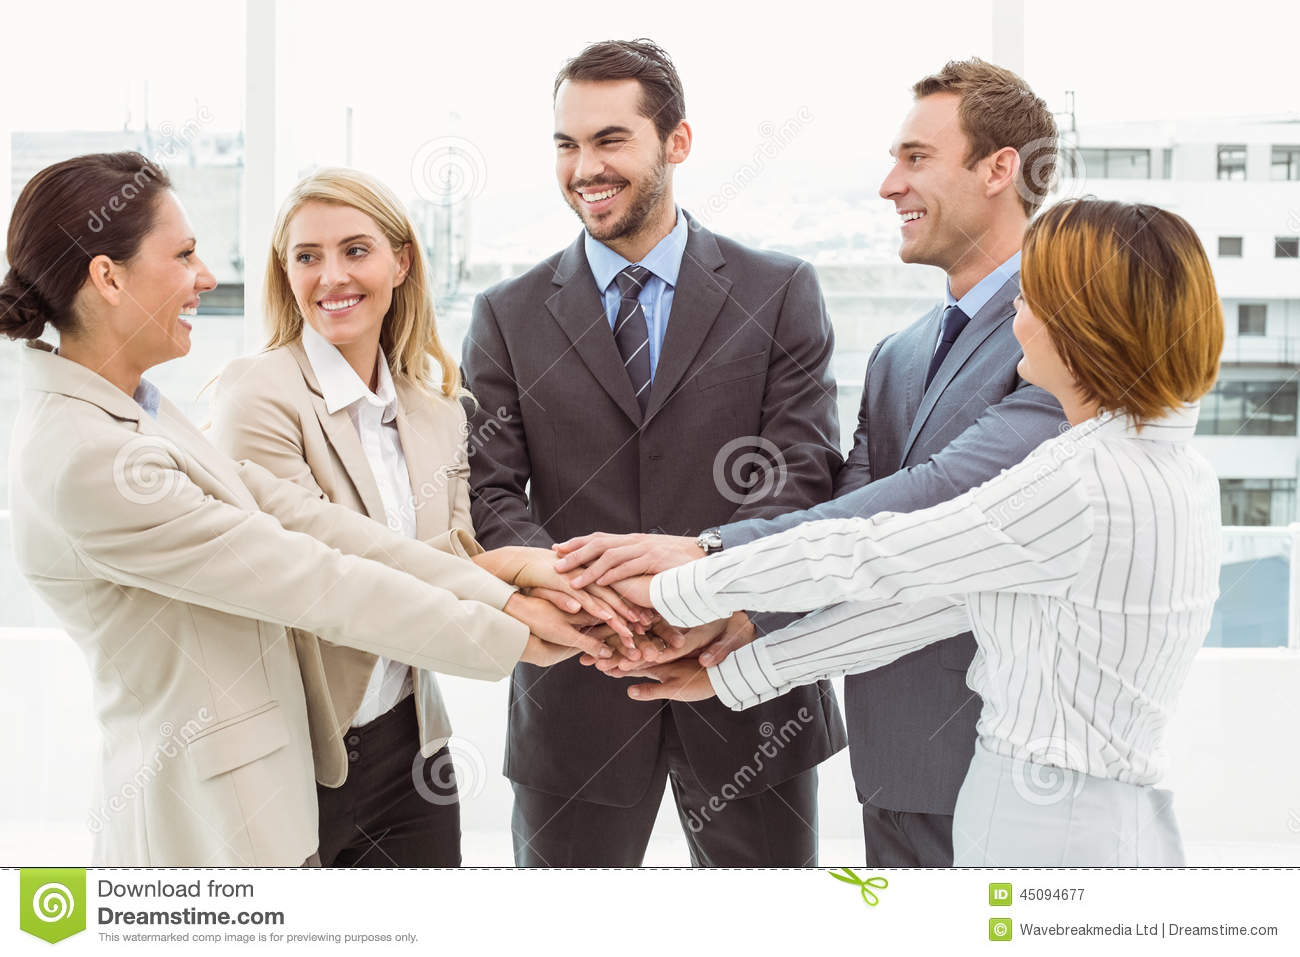 Executives holding hands together in office